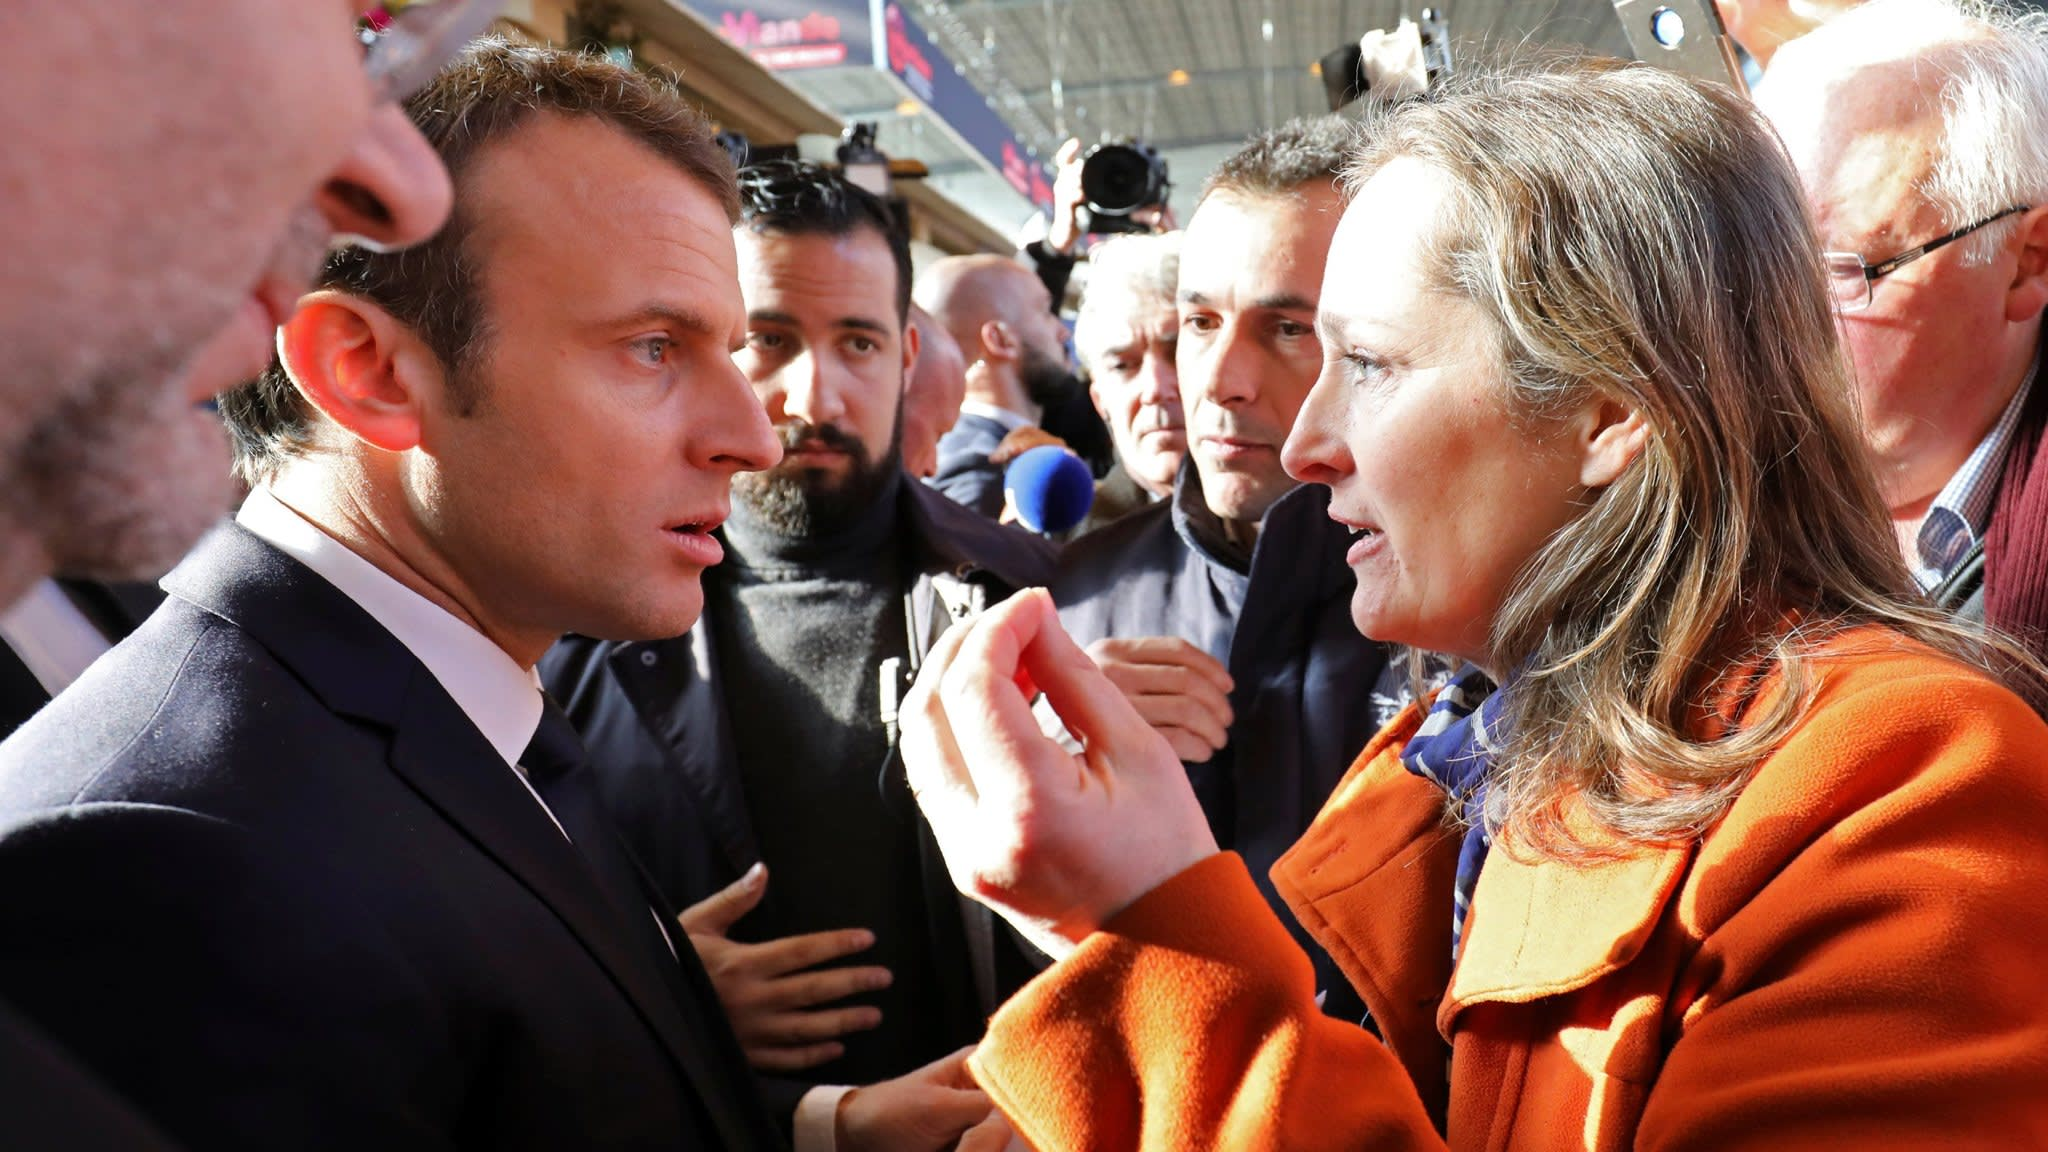 Farmers give Macron hostile welcome at Paris fair